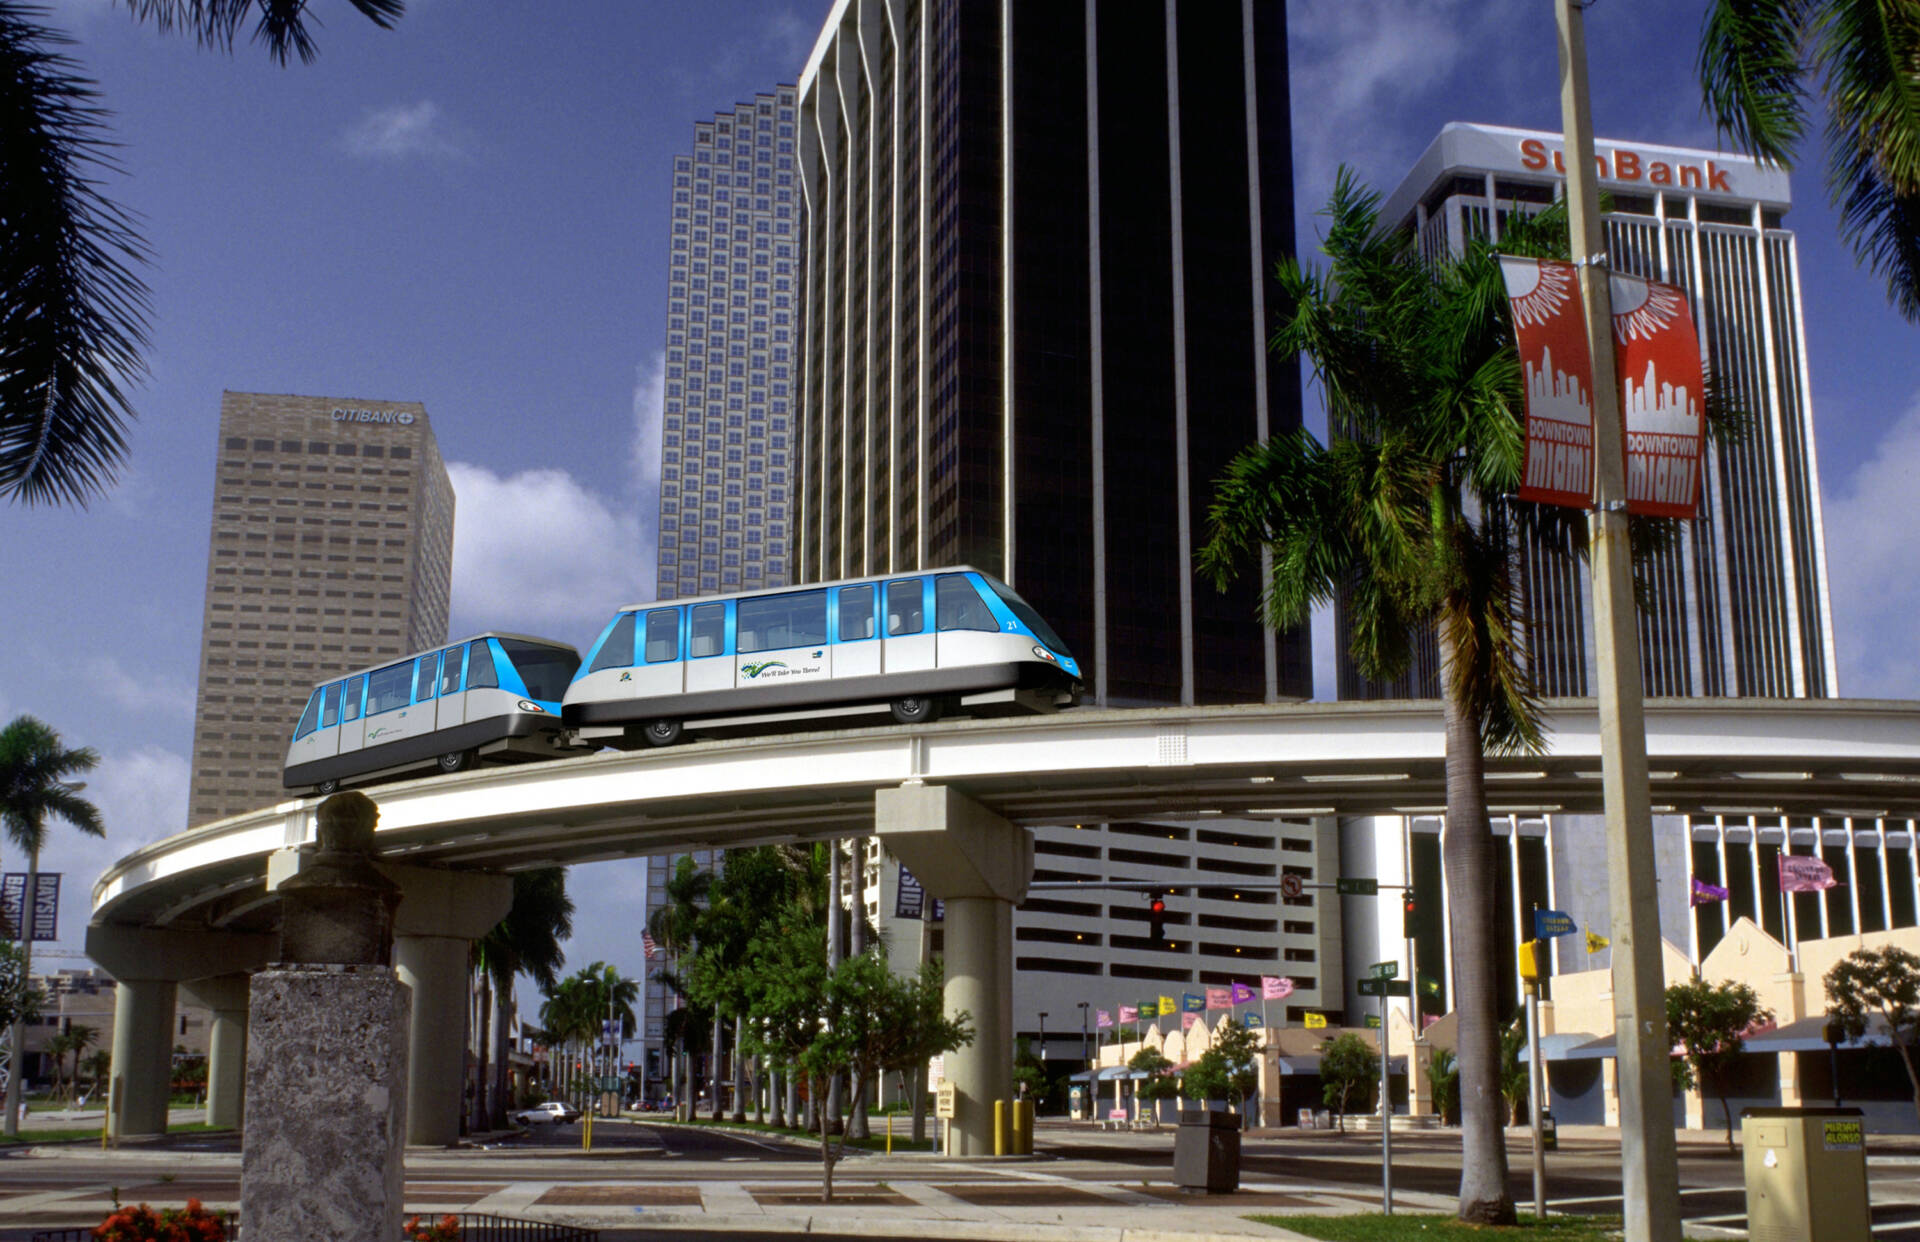 People Mover at Miami International Airport